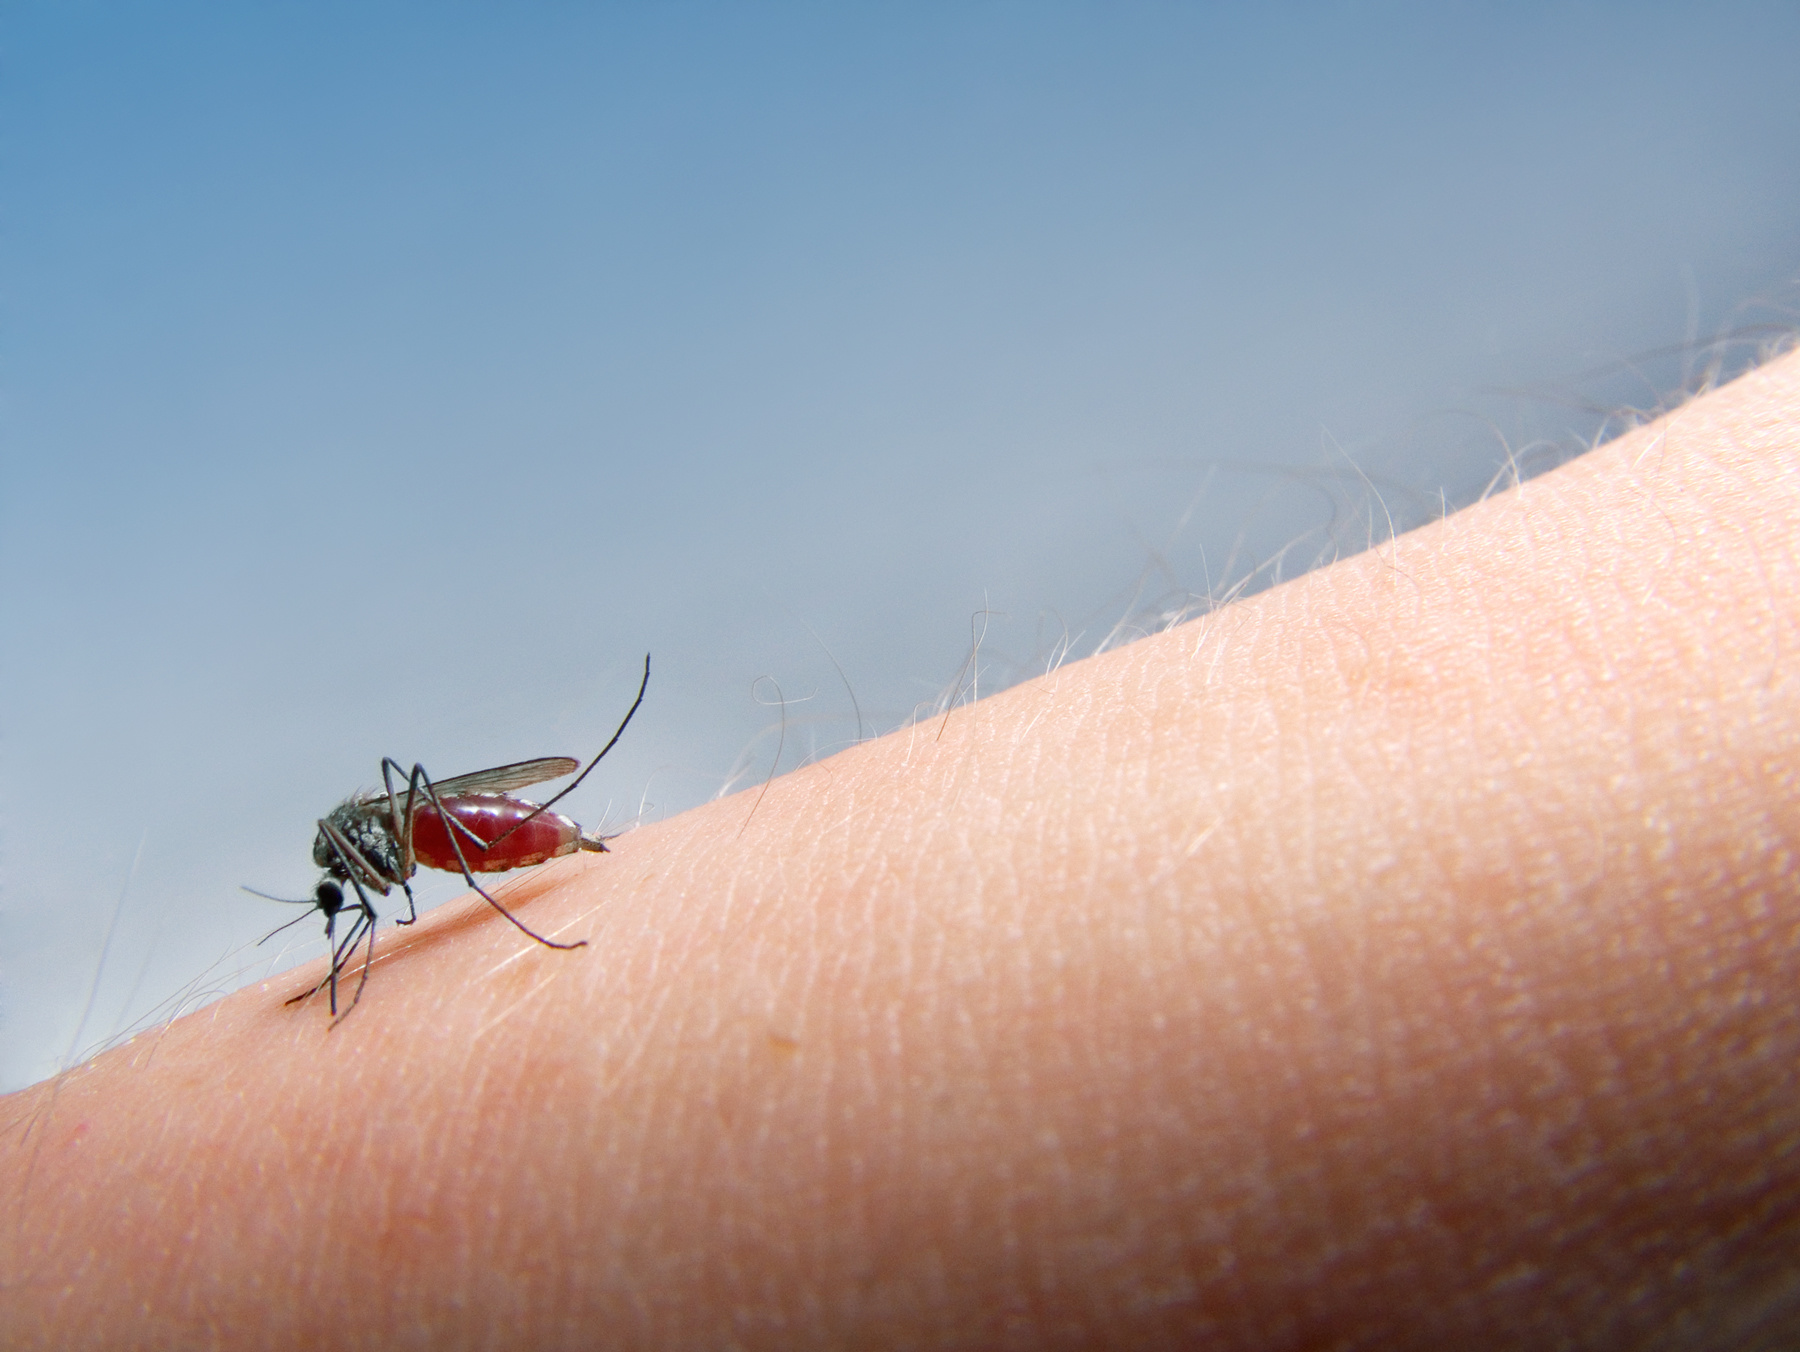 mosquito sucking blood © Stocksnapper/Adobe Stock